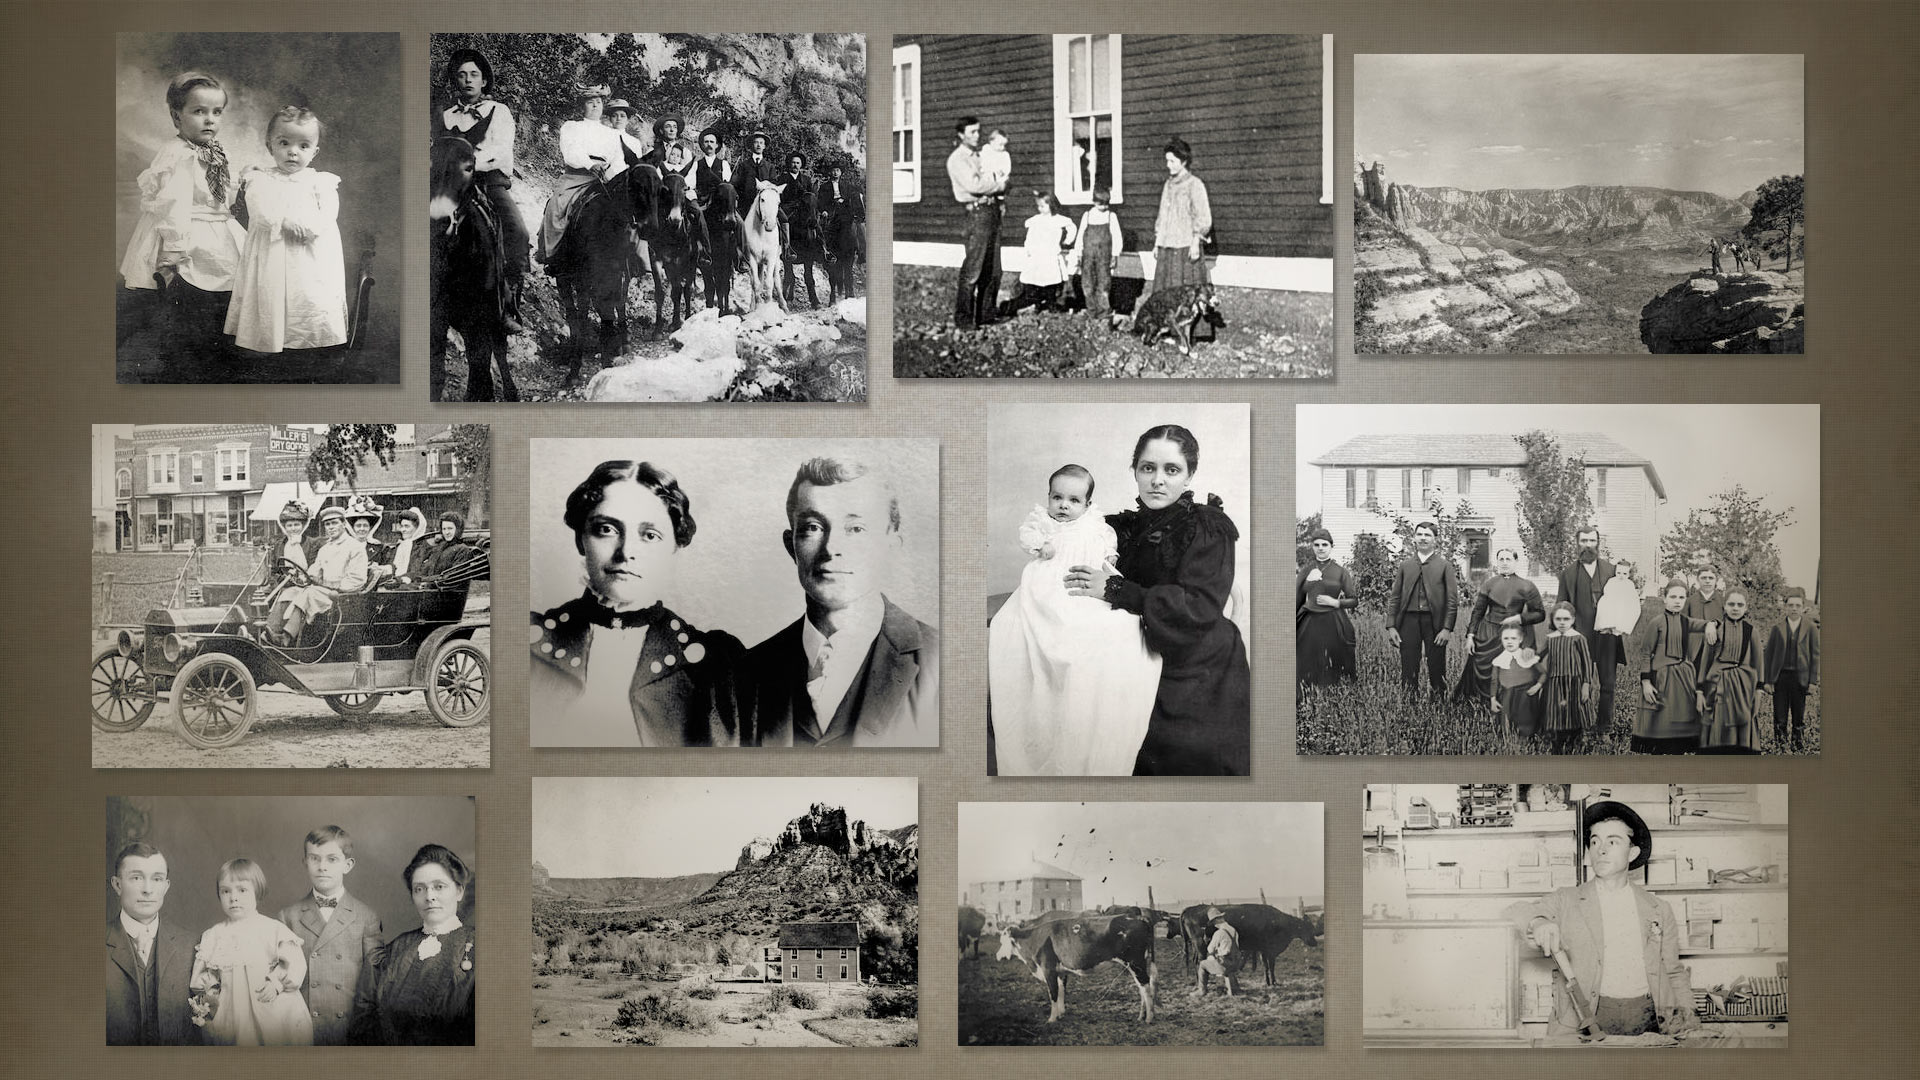 A collage of photos from the early 1900s of Sedona Arabella Miller Schnebly and her family, who were among the  earliest settlements in the region that now shares her first name.